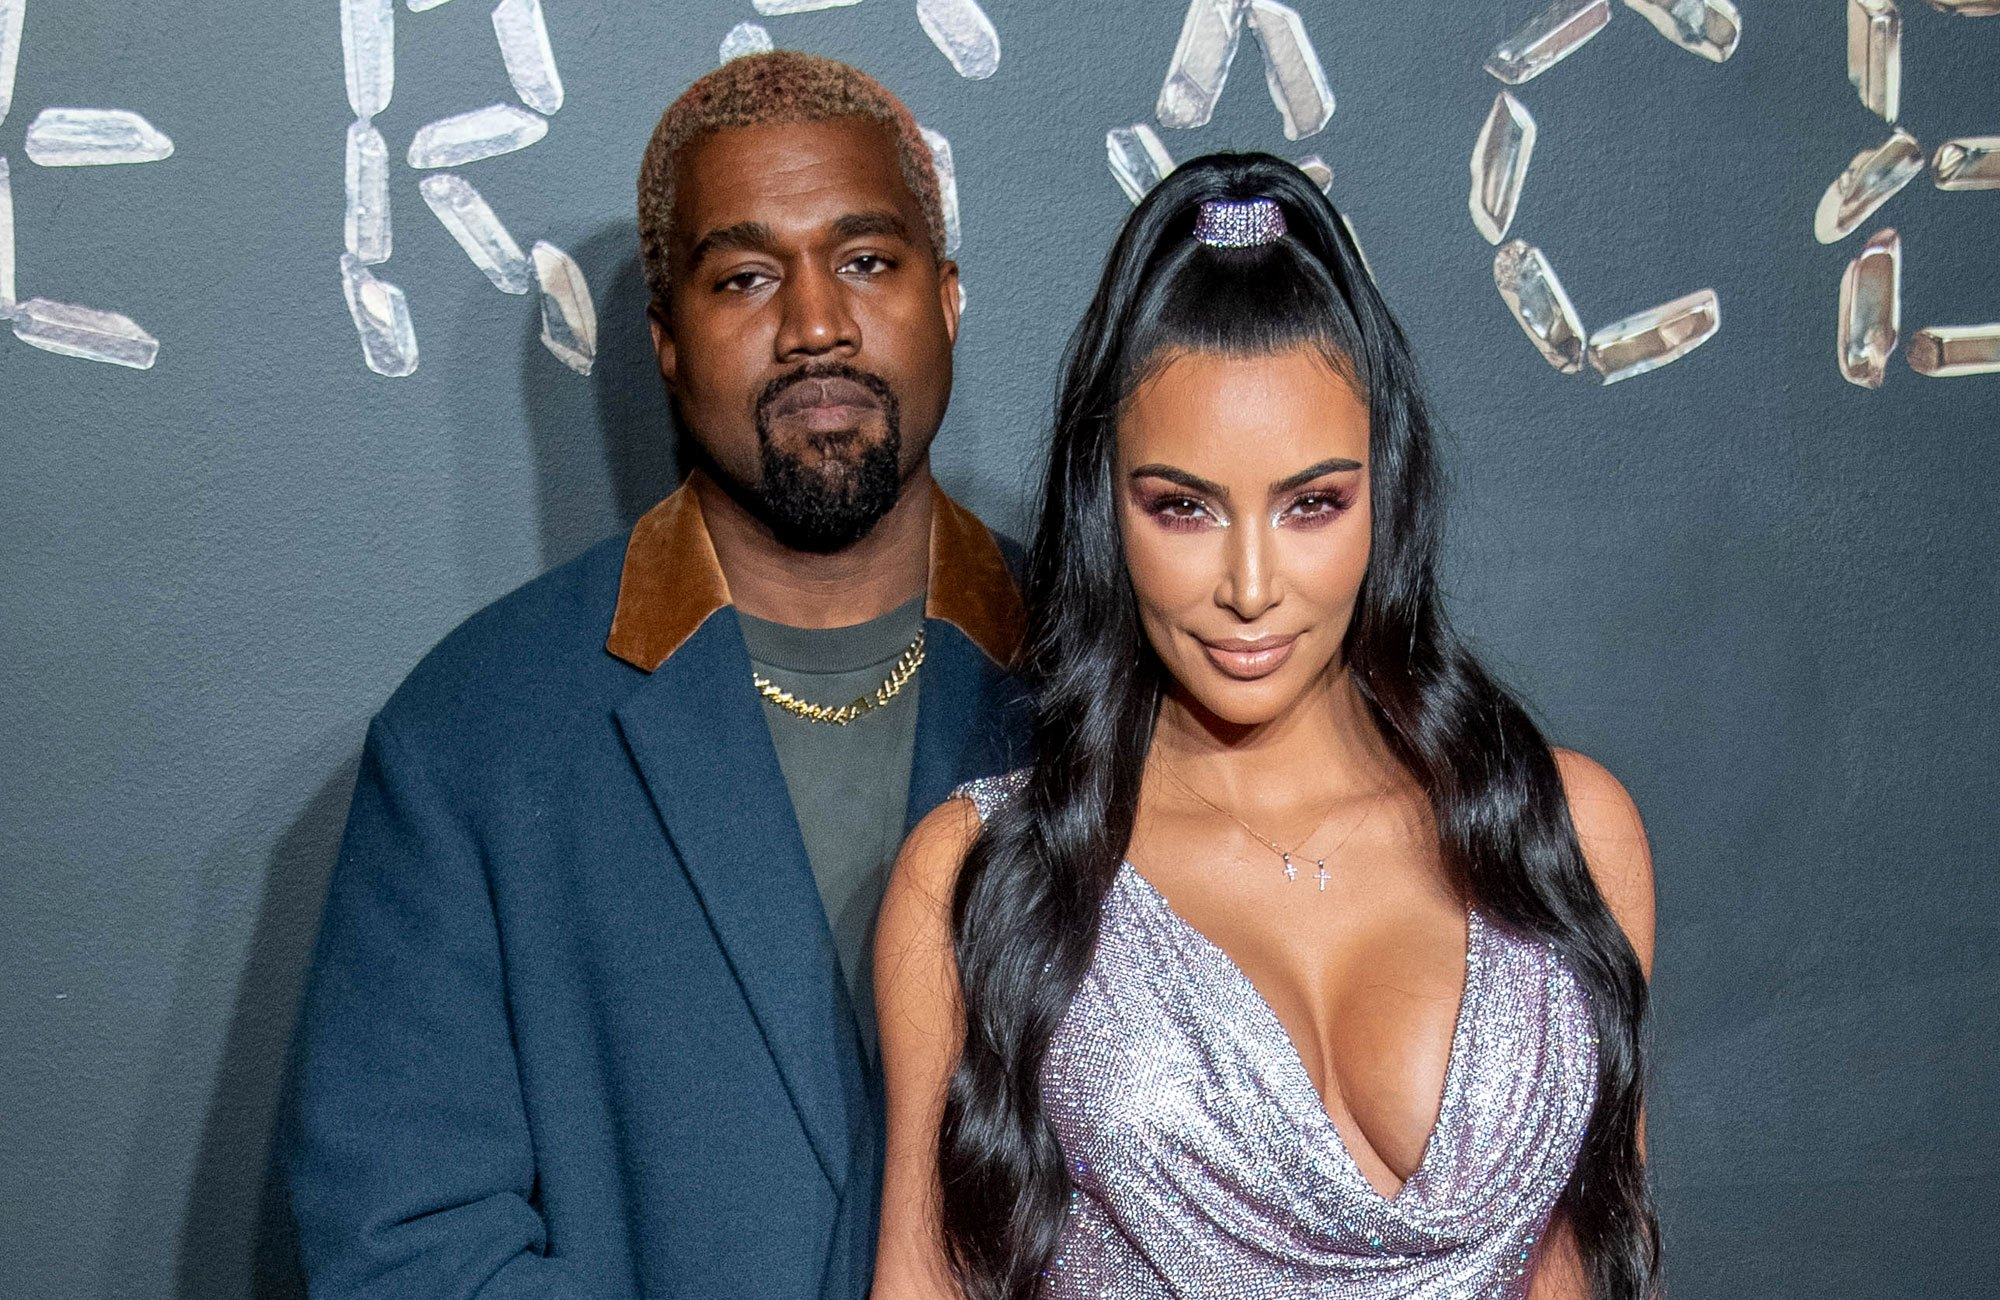 kuwtk-kim-kardashian-reportedly-really-patient-with-kanye-west-as-things-are-starting-to-improve